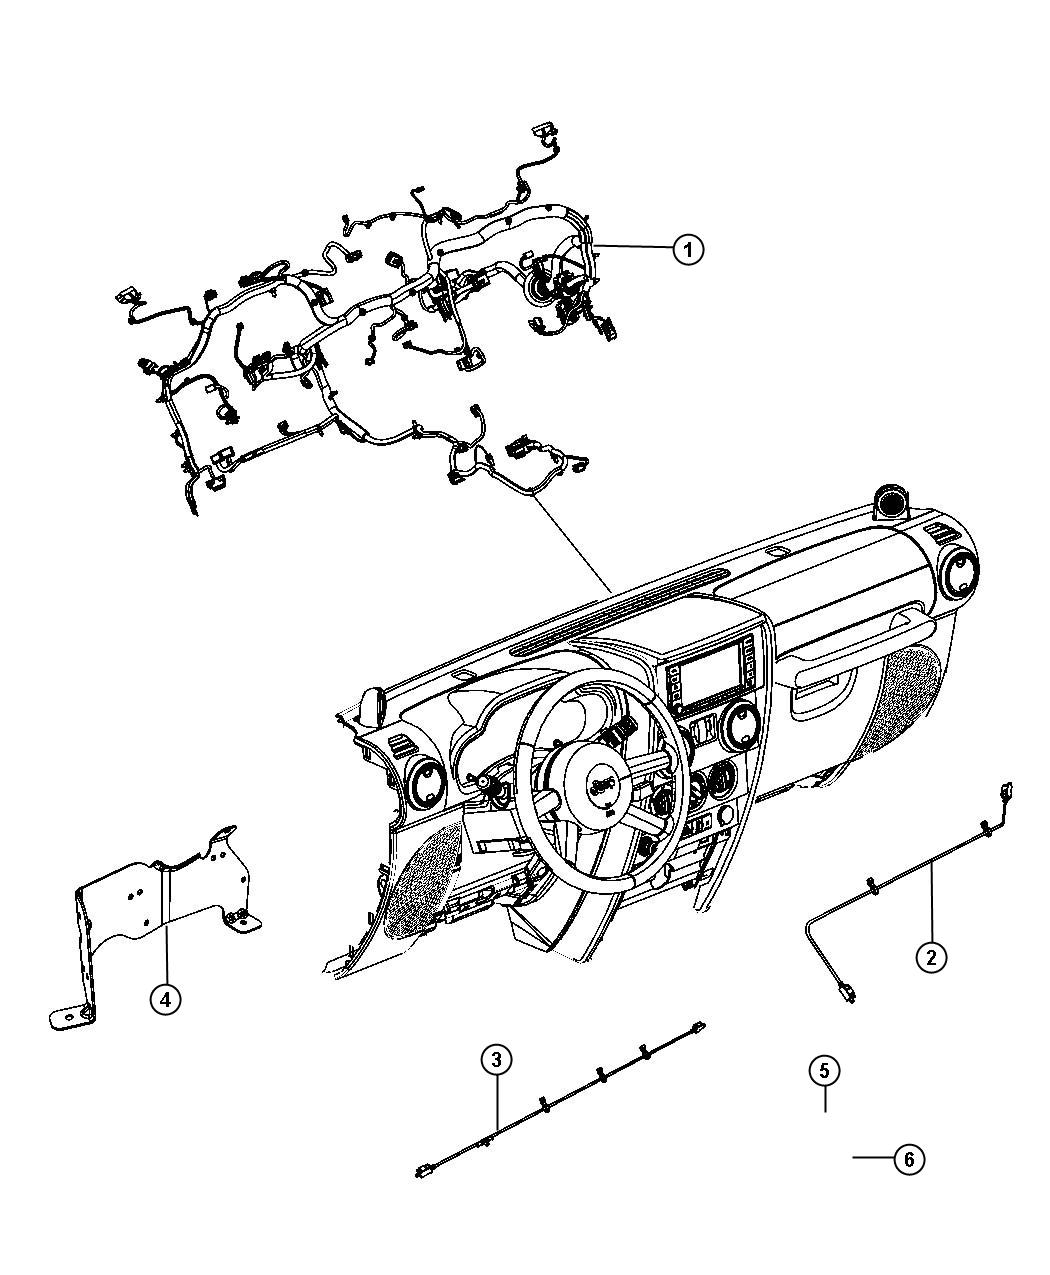 Jeep Wrangler Wiring. Instrument panel. [manual windows